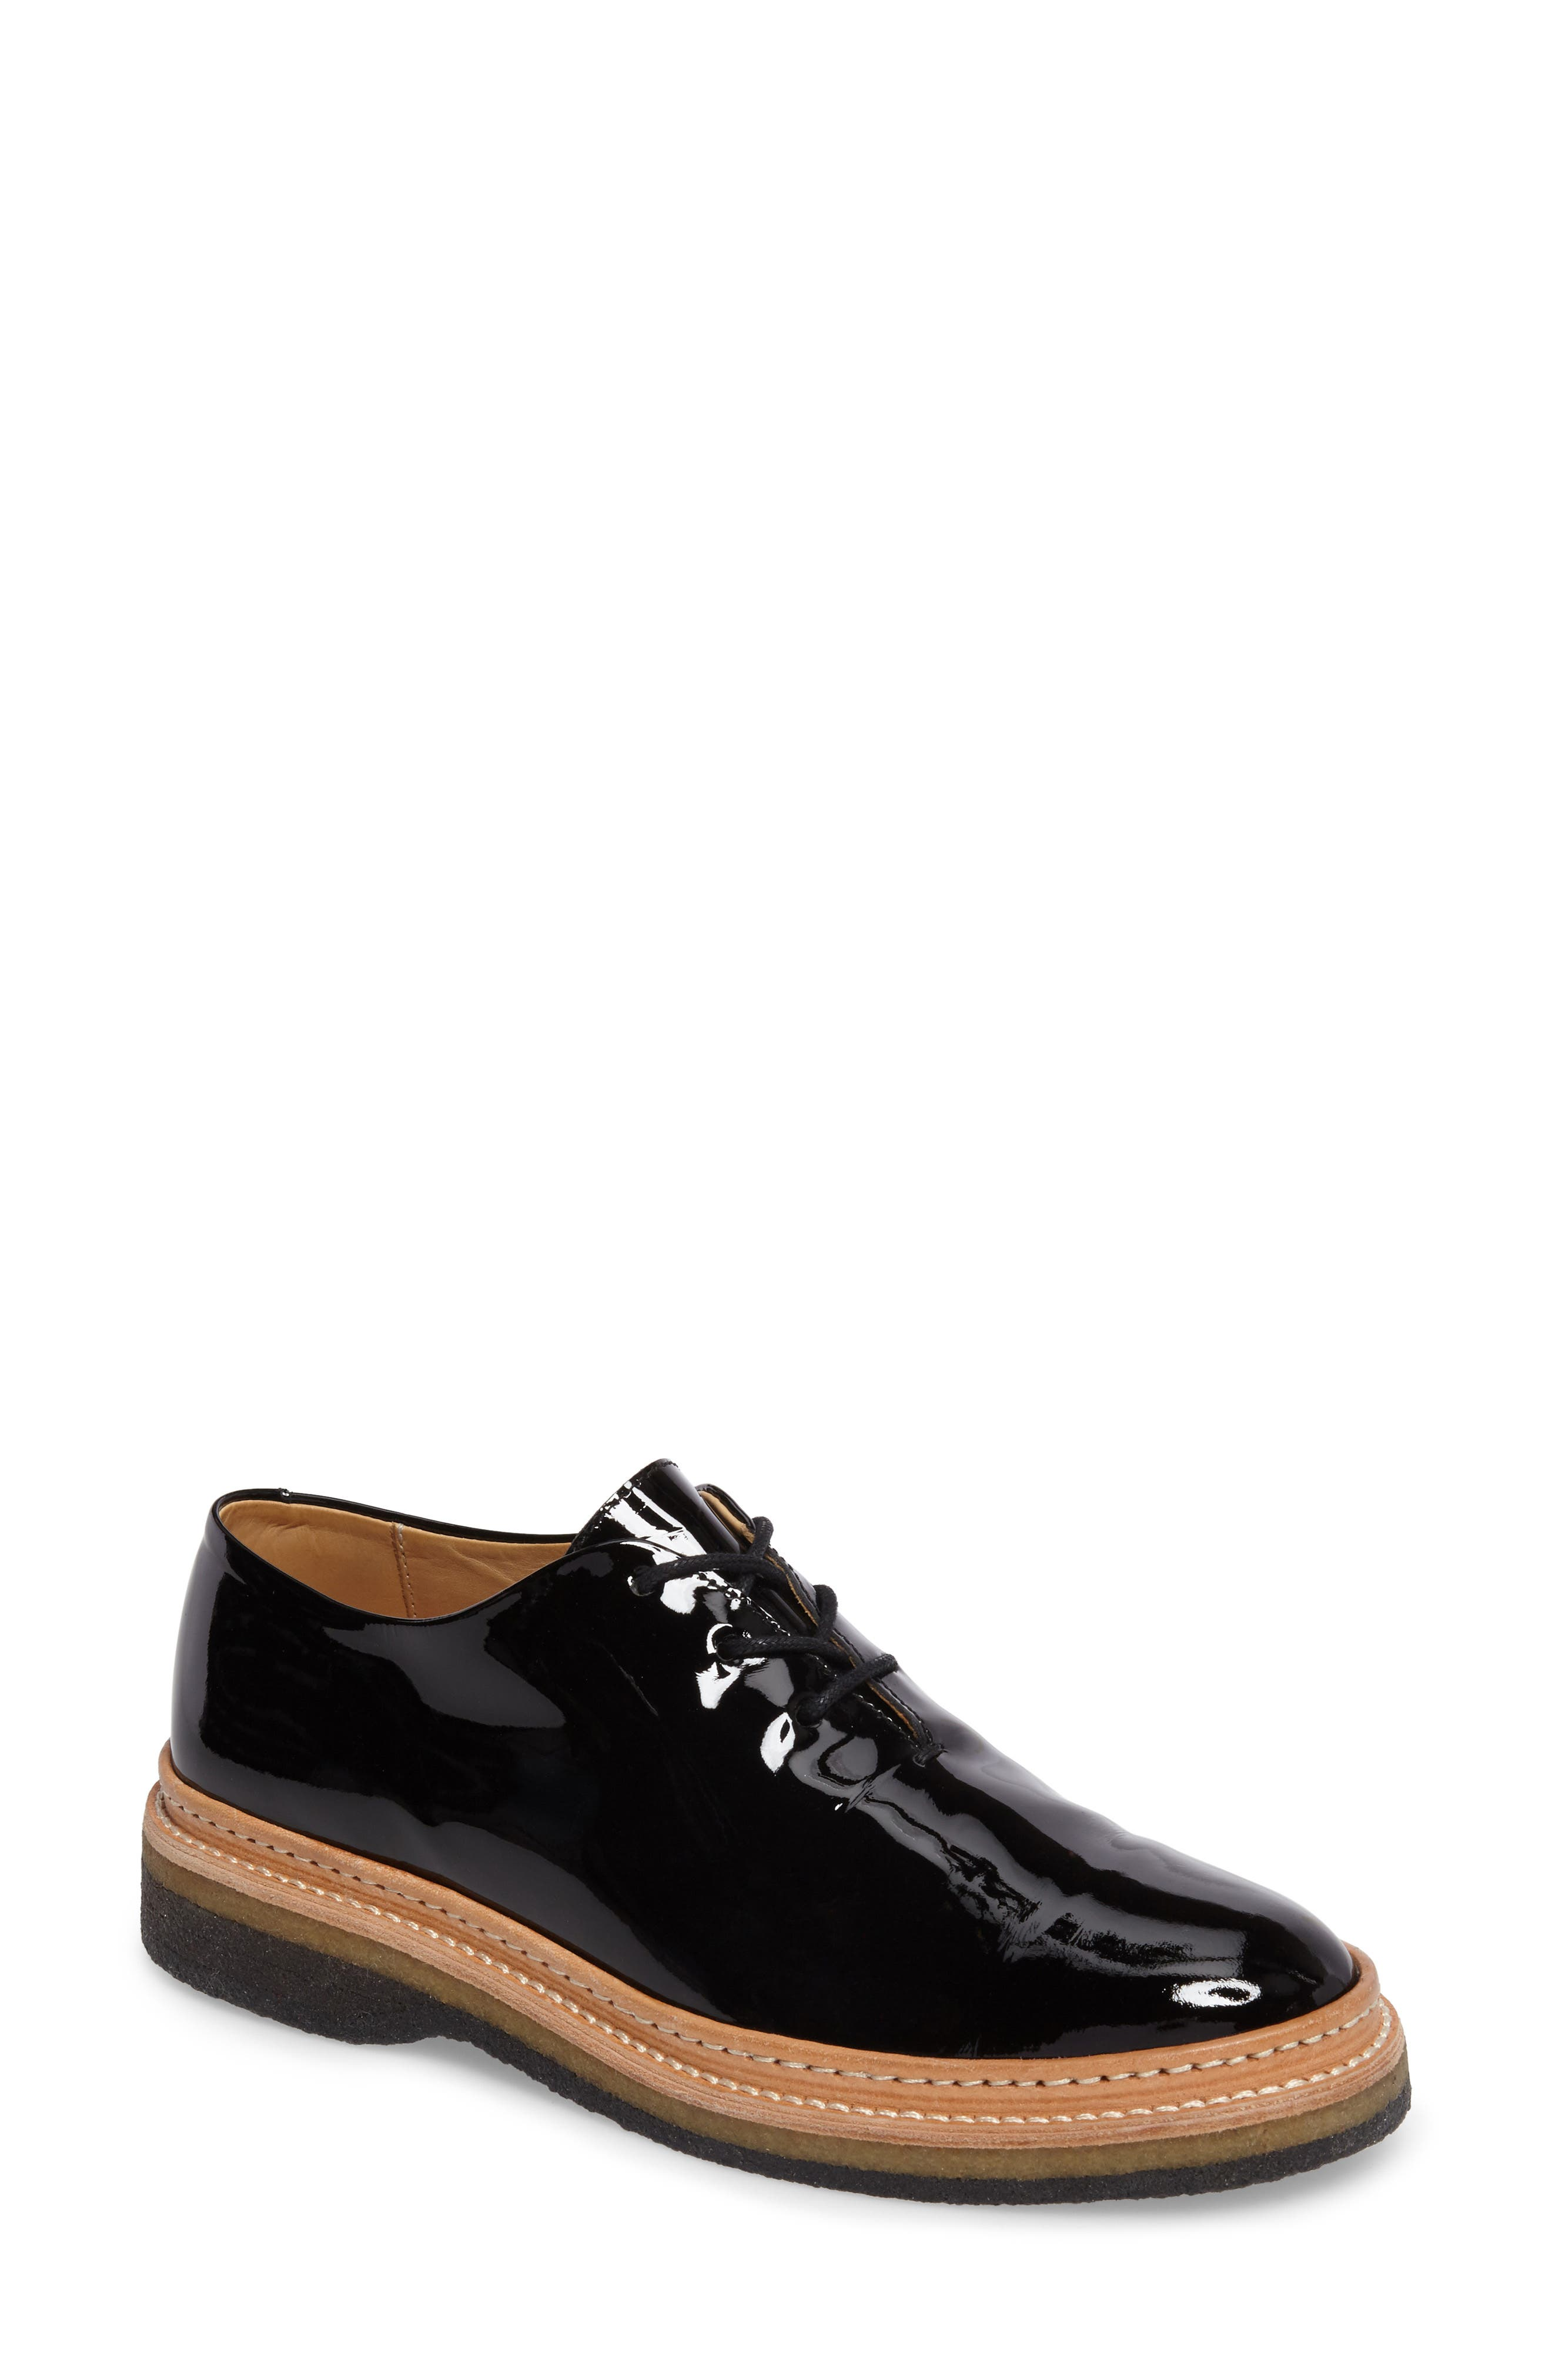 Alternate Image 1 Selected - WANT LES ESSENTIELS Cordova Oxford (Women)